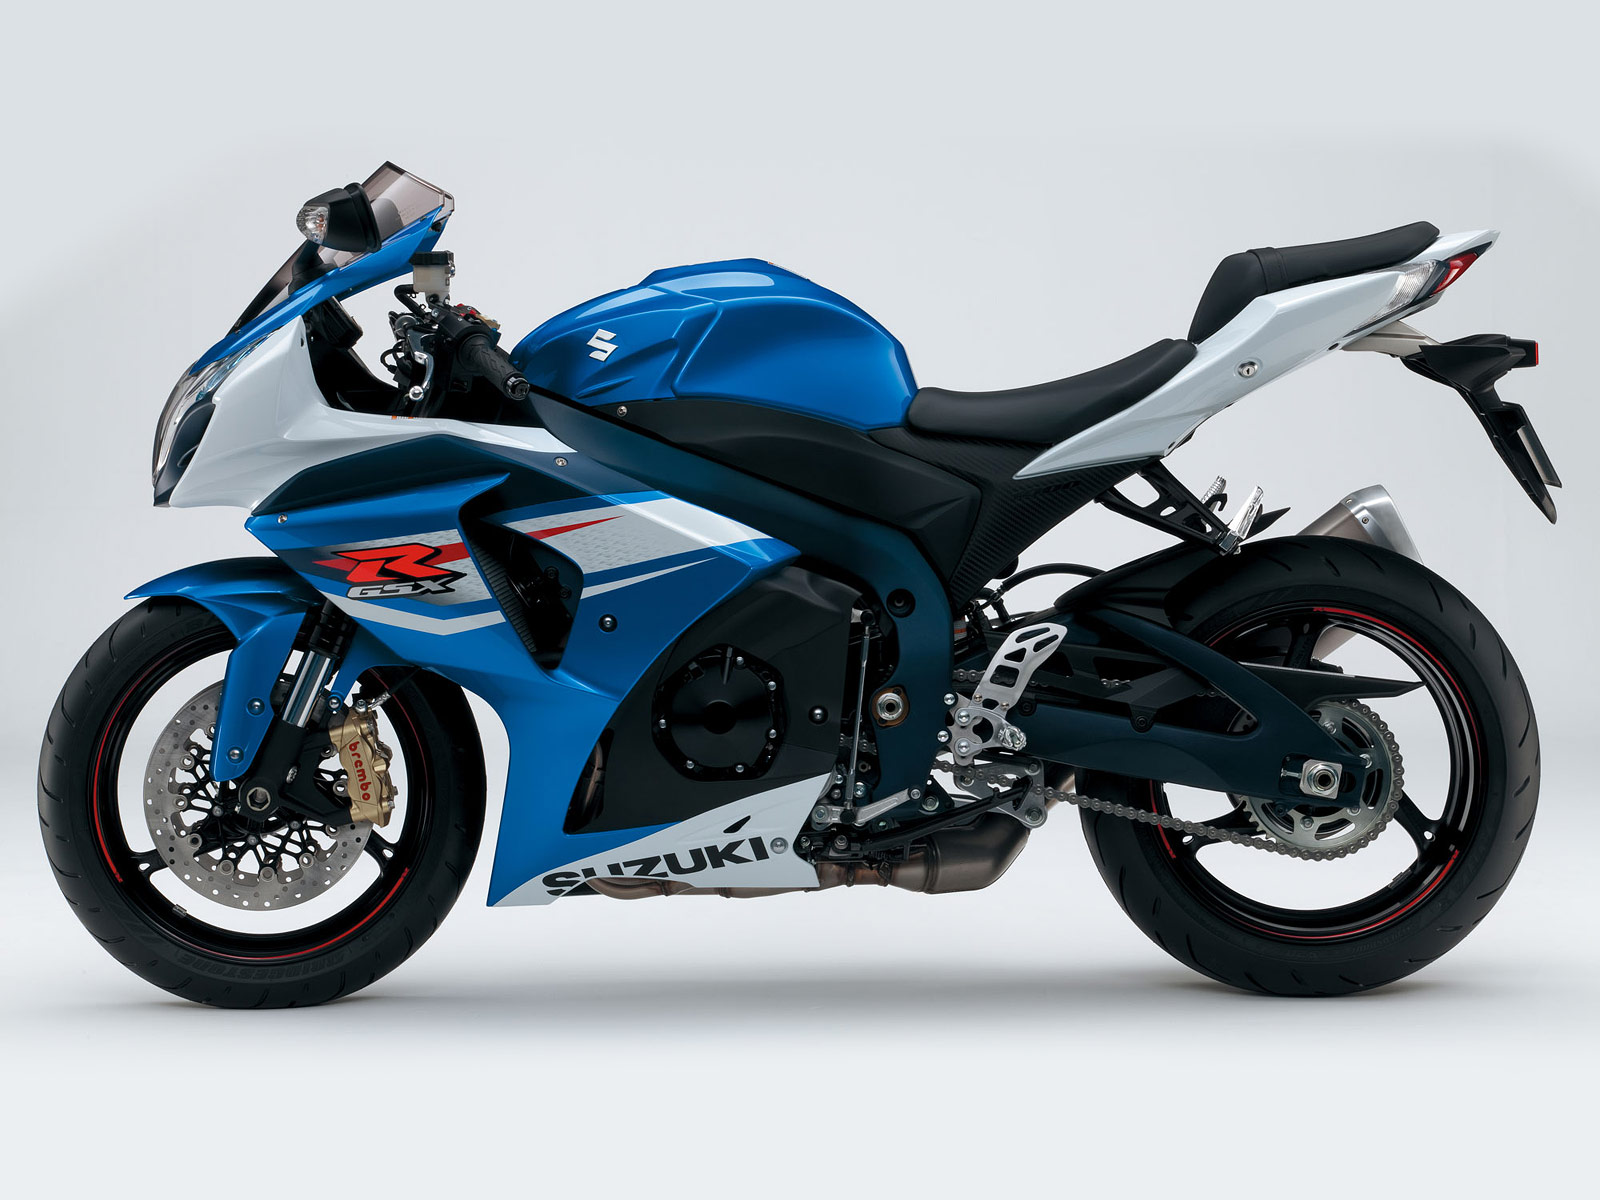 2012 suzuki gsx r1000 specifications gambar motor. Black Bedroom Furniture Sets. Home Design Ideas